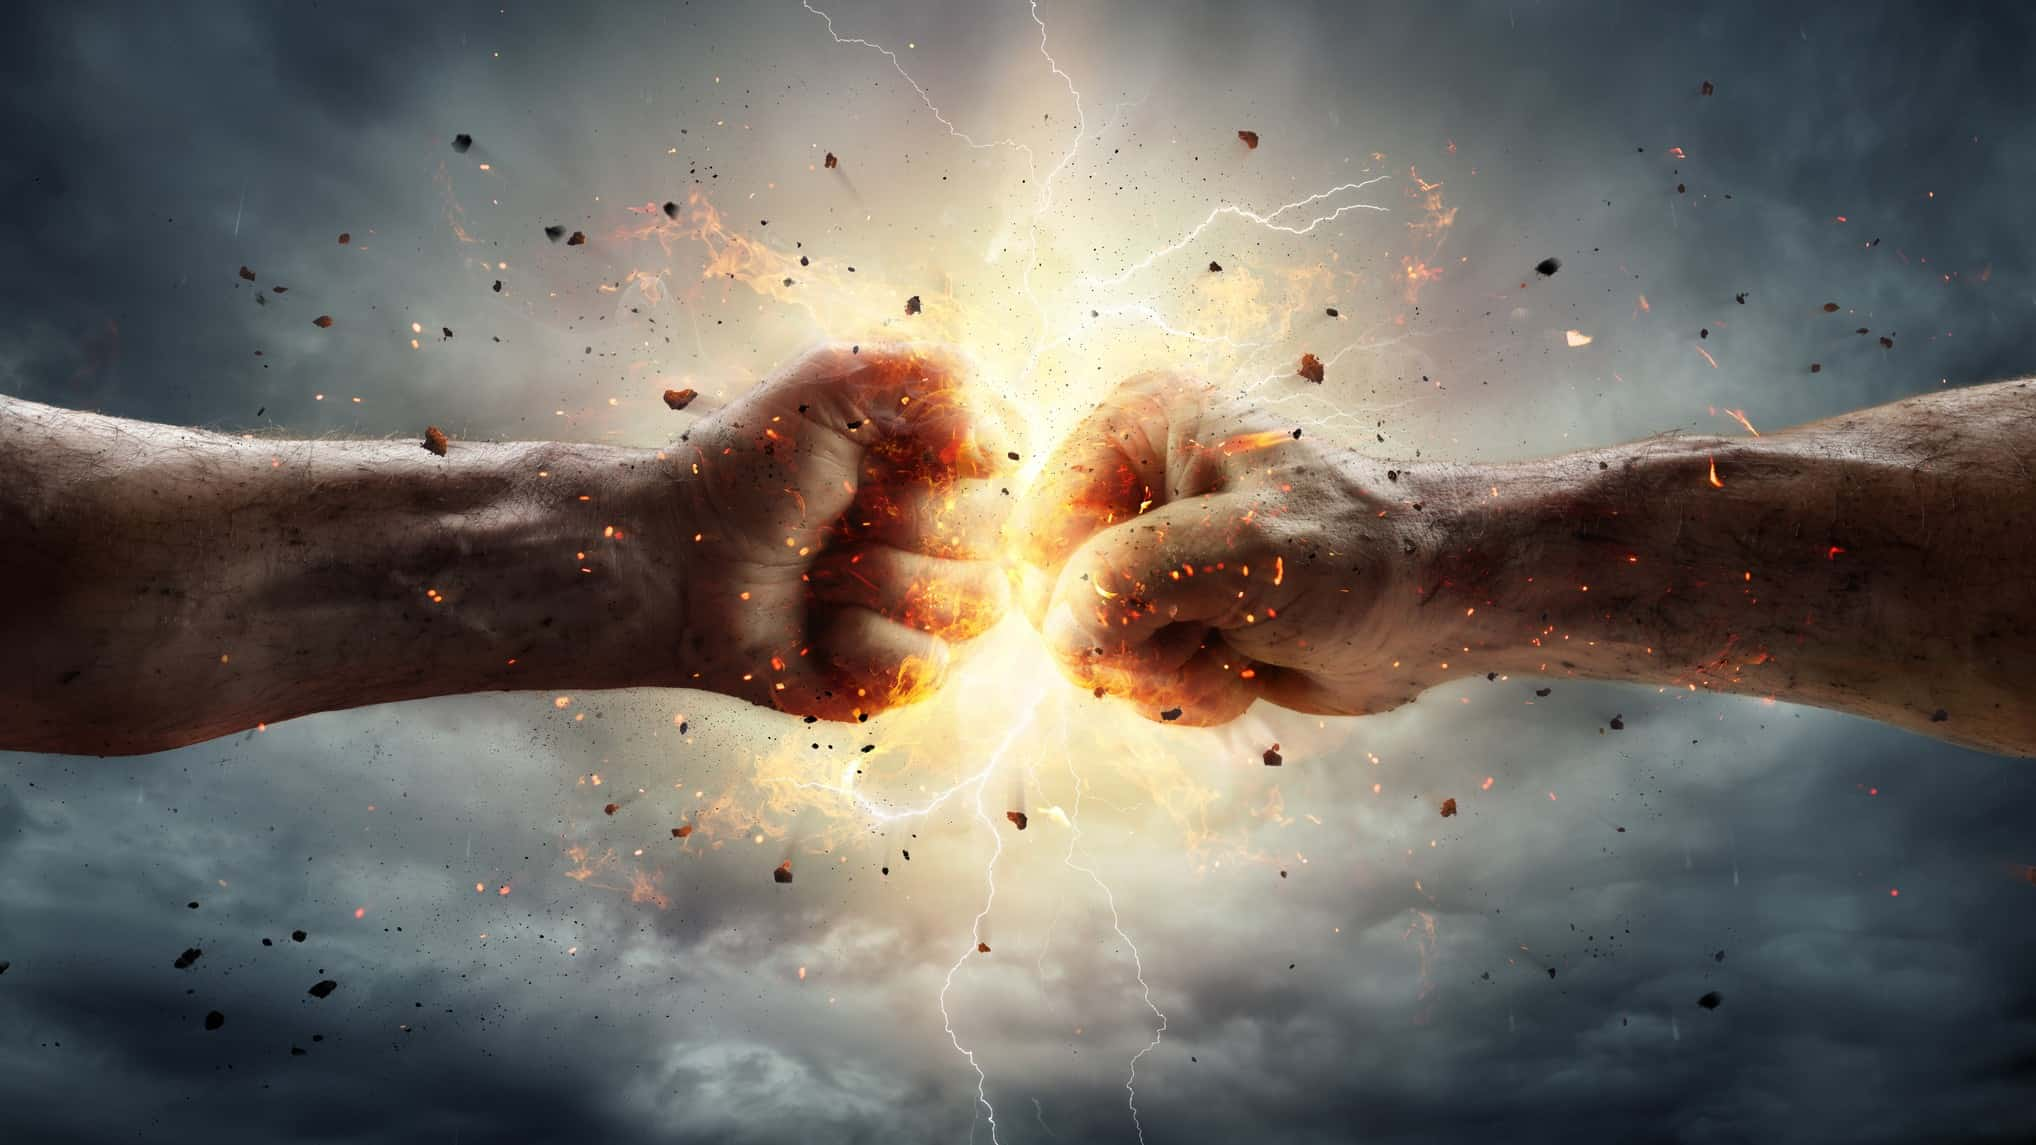 Two fists connect in a surge of power, indicating strong share price growth or new partnerships for ASC mining and resource companies